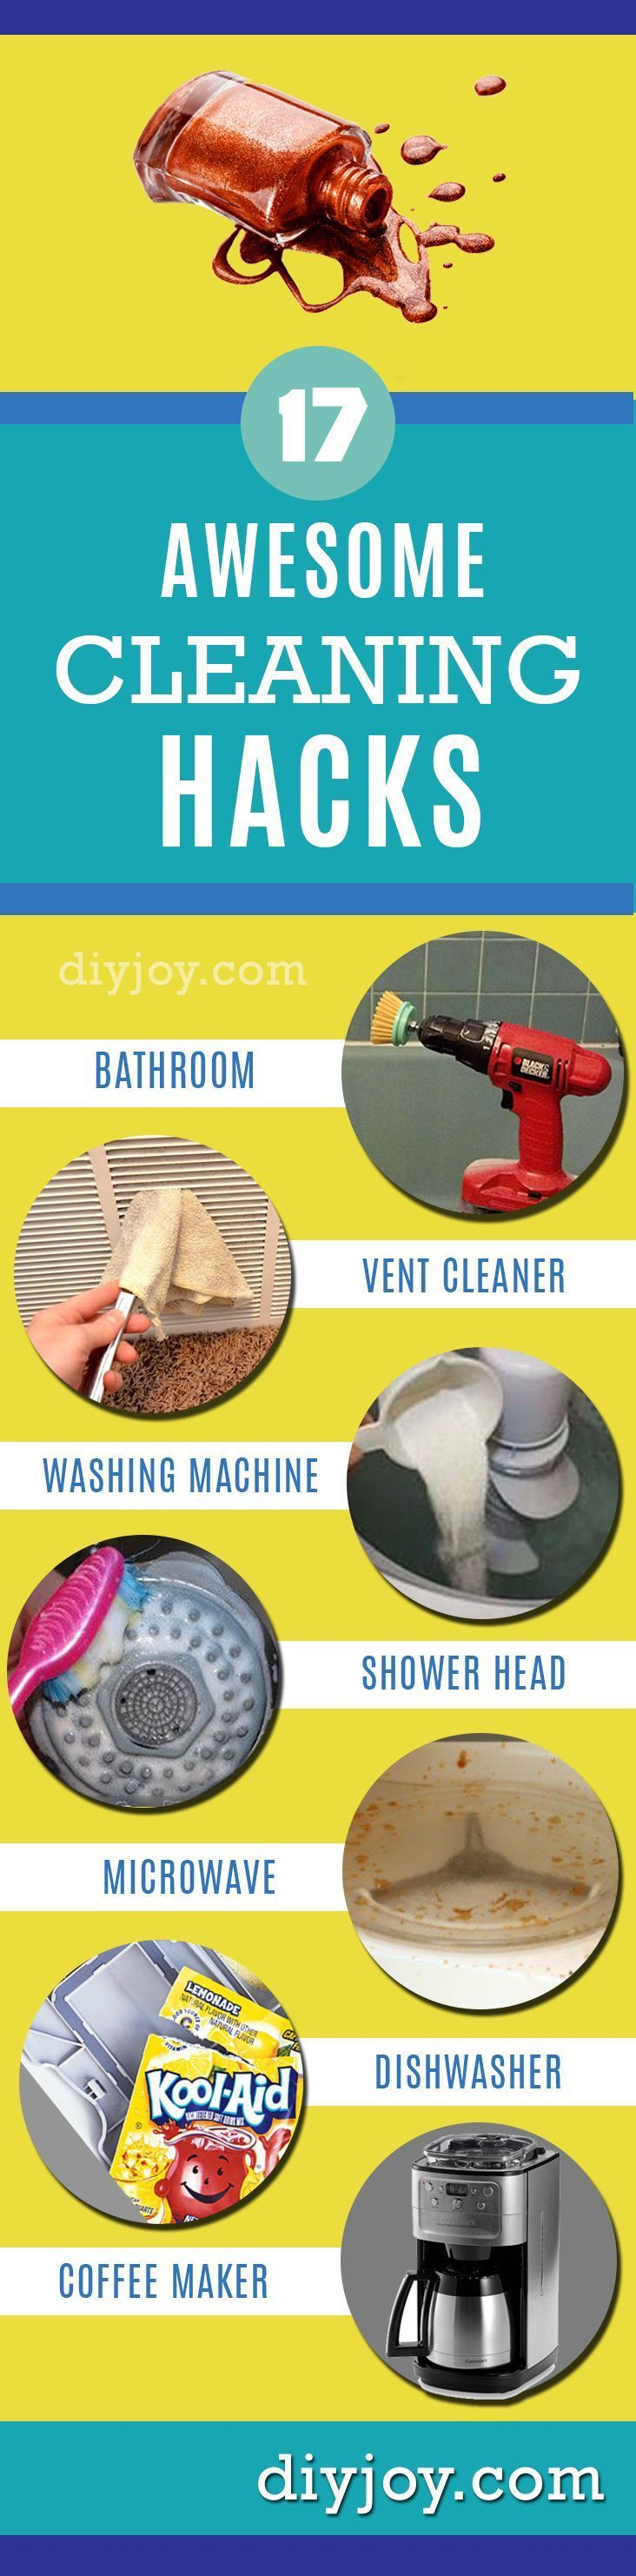 Cool Cleaning Hacks For Every Room In Your House   EASY DIYs http://diyjoy.com/cleaning-tips-life-hacks